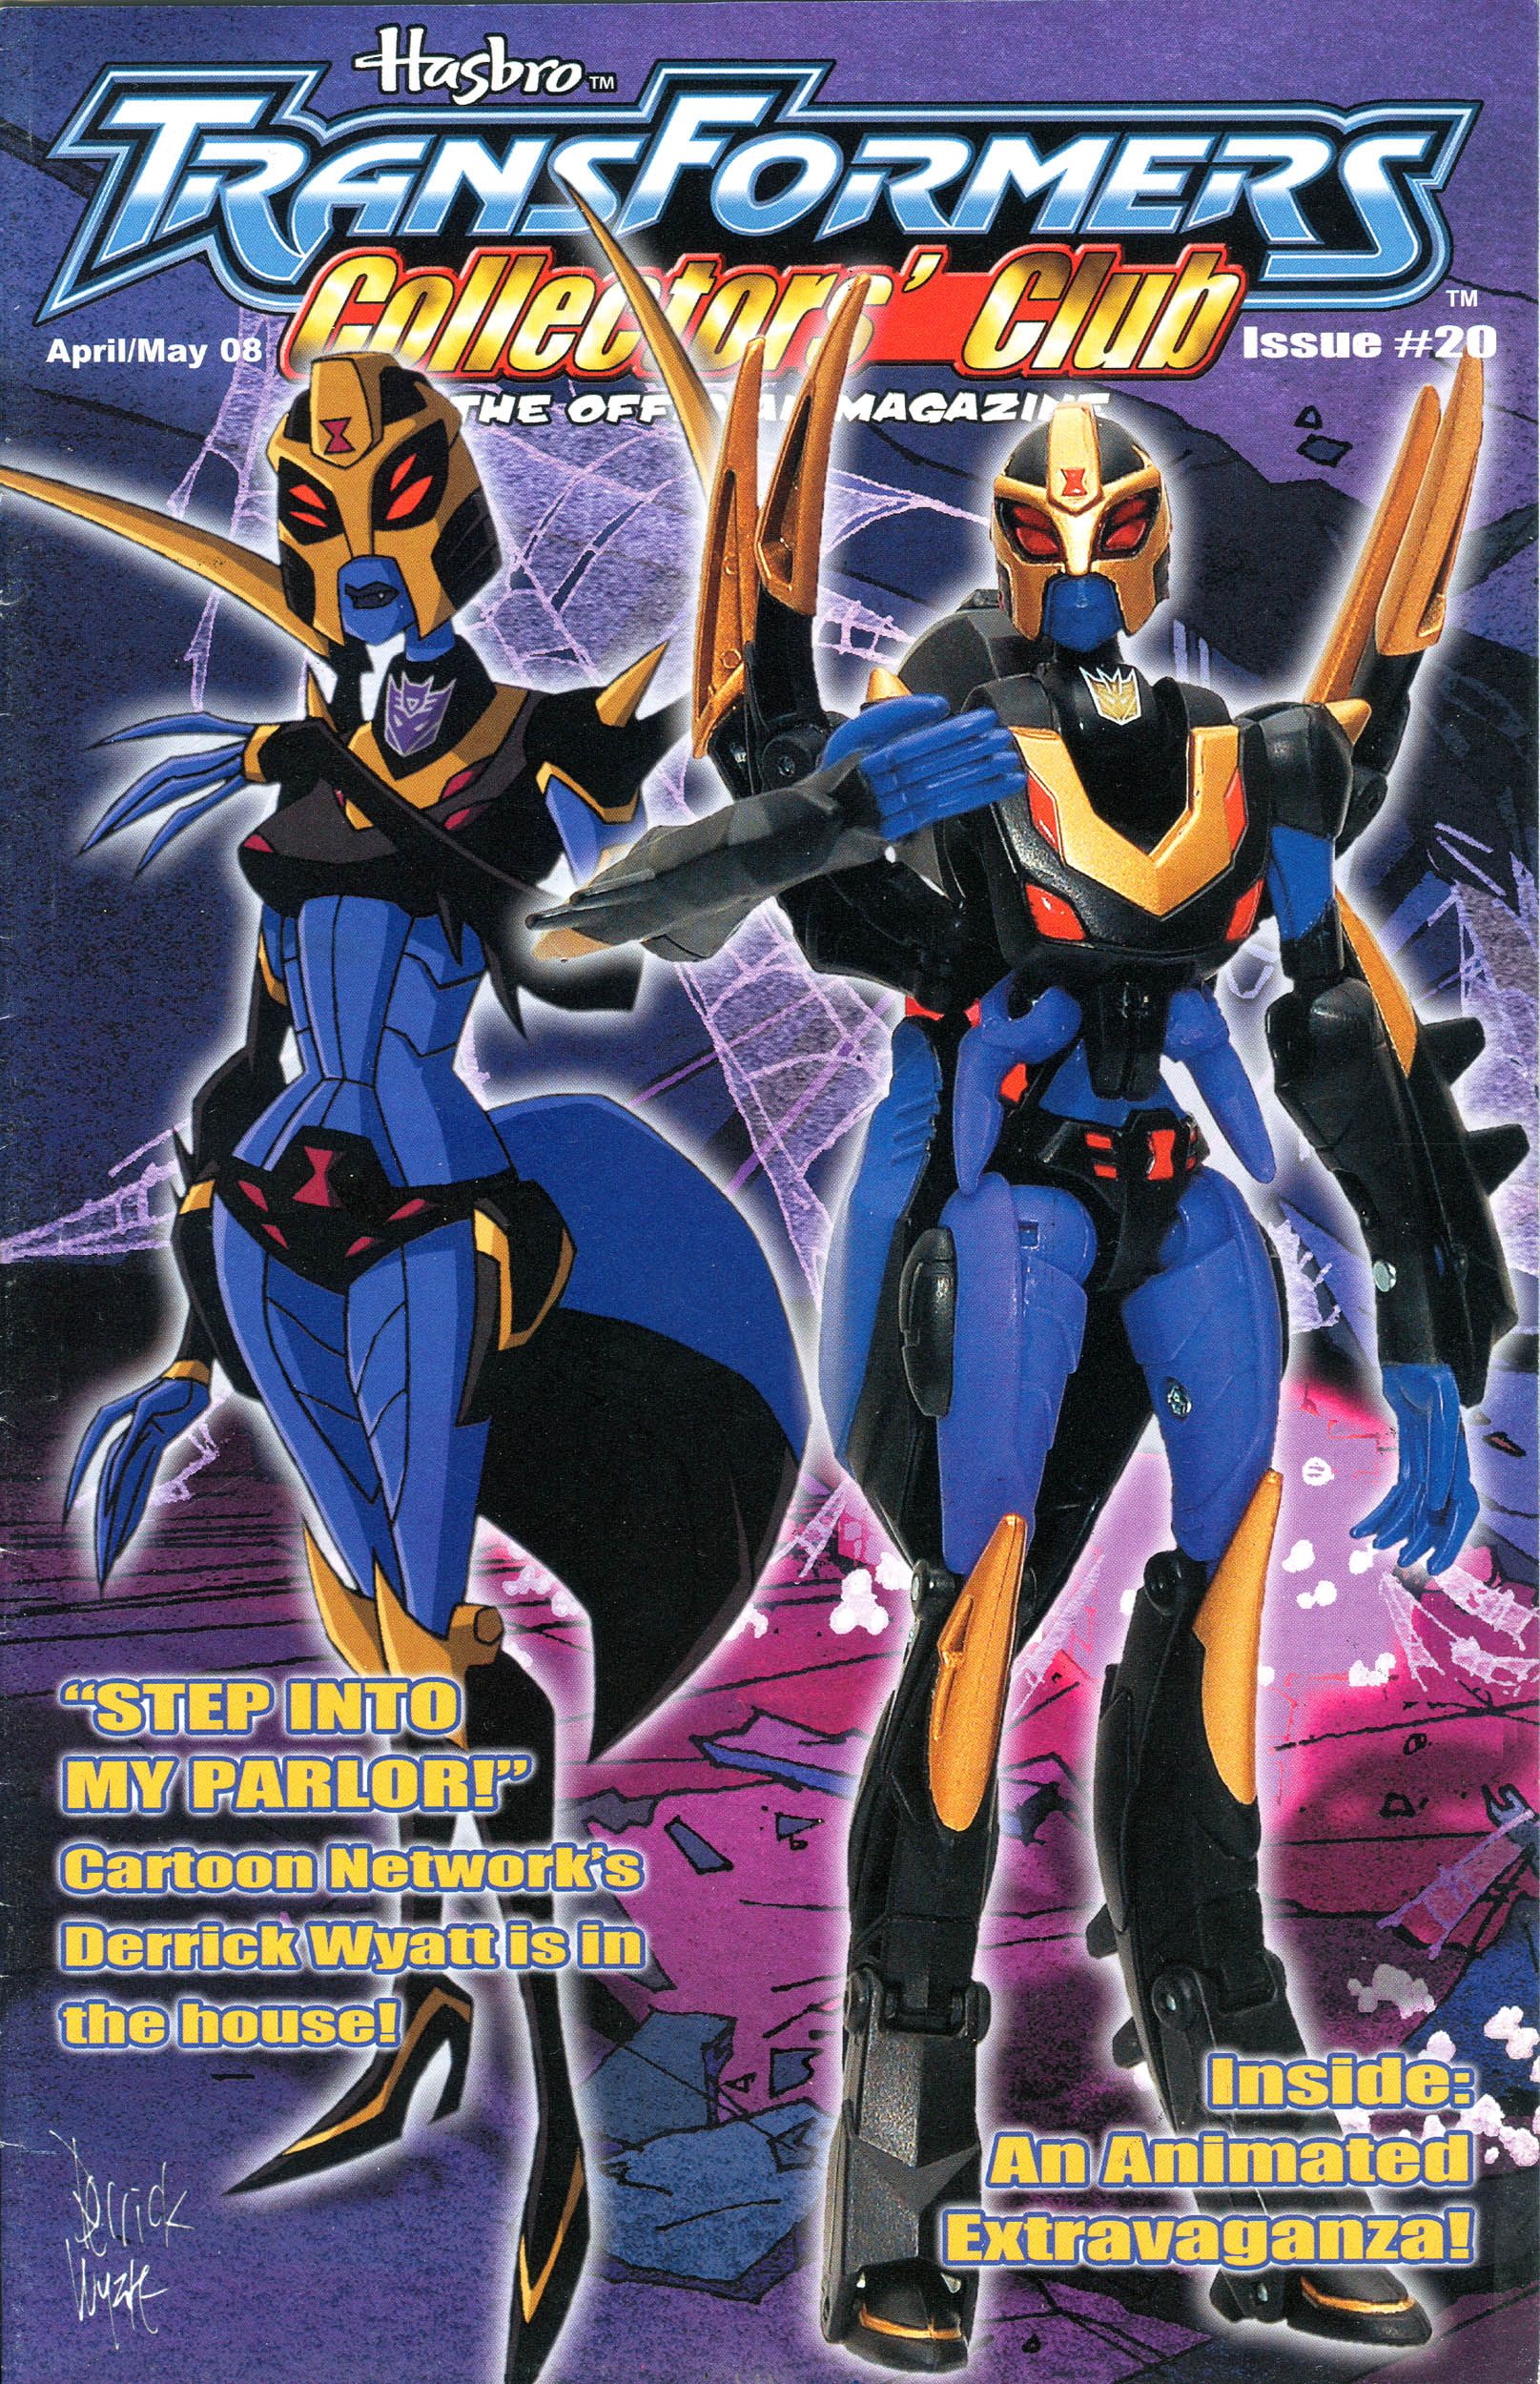 Read online Transformers: Collectors' Club comic -  Issue #20 - 1